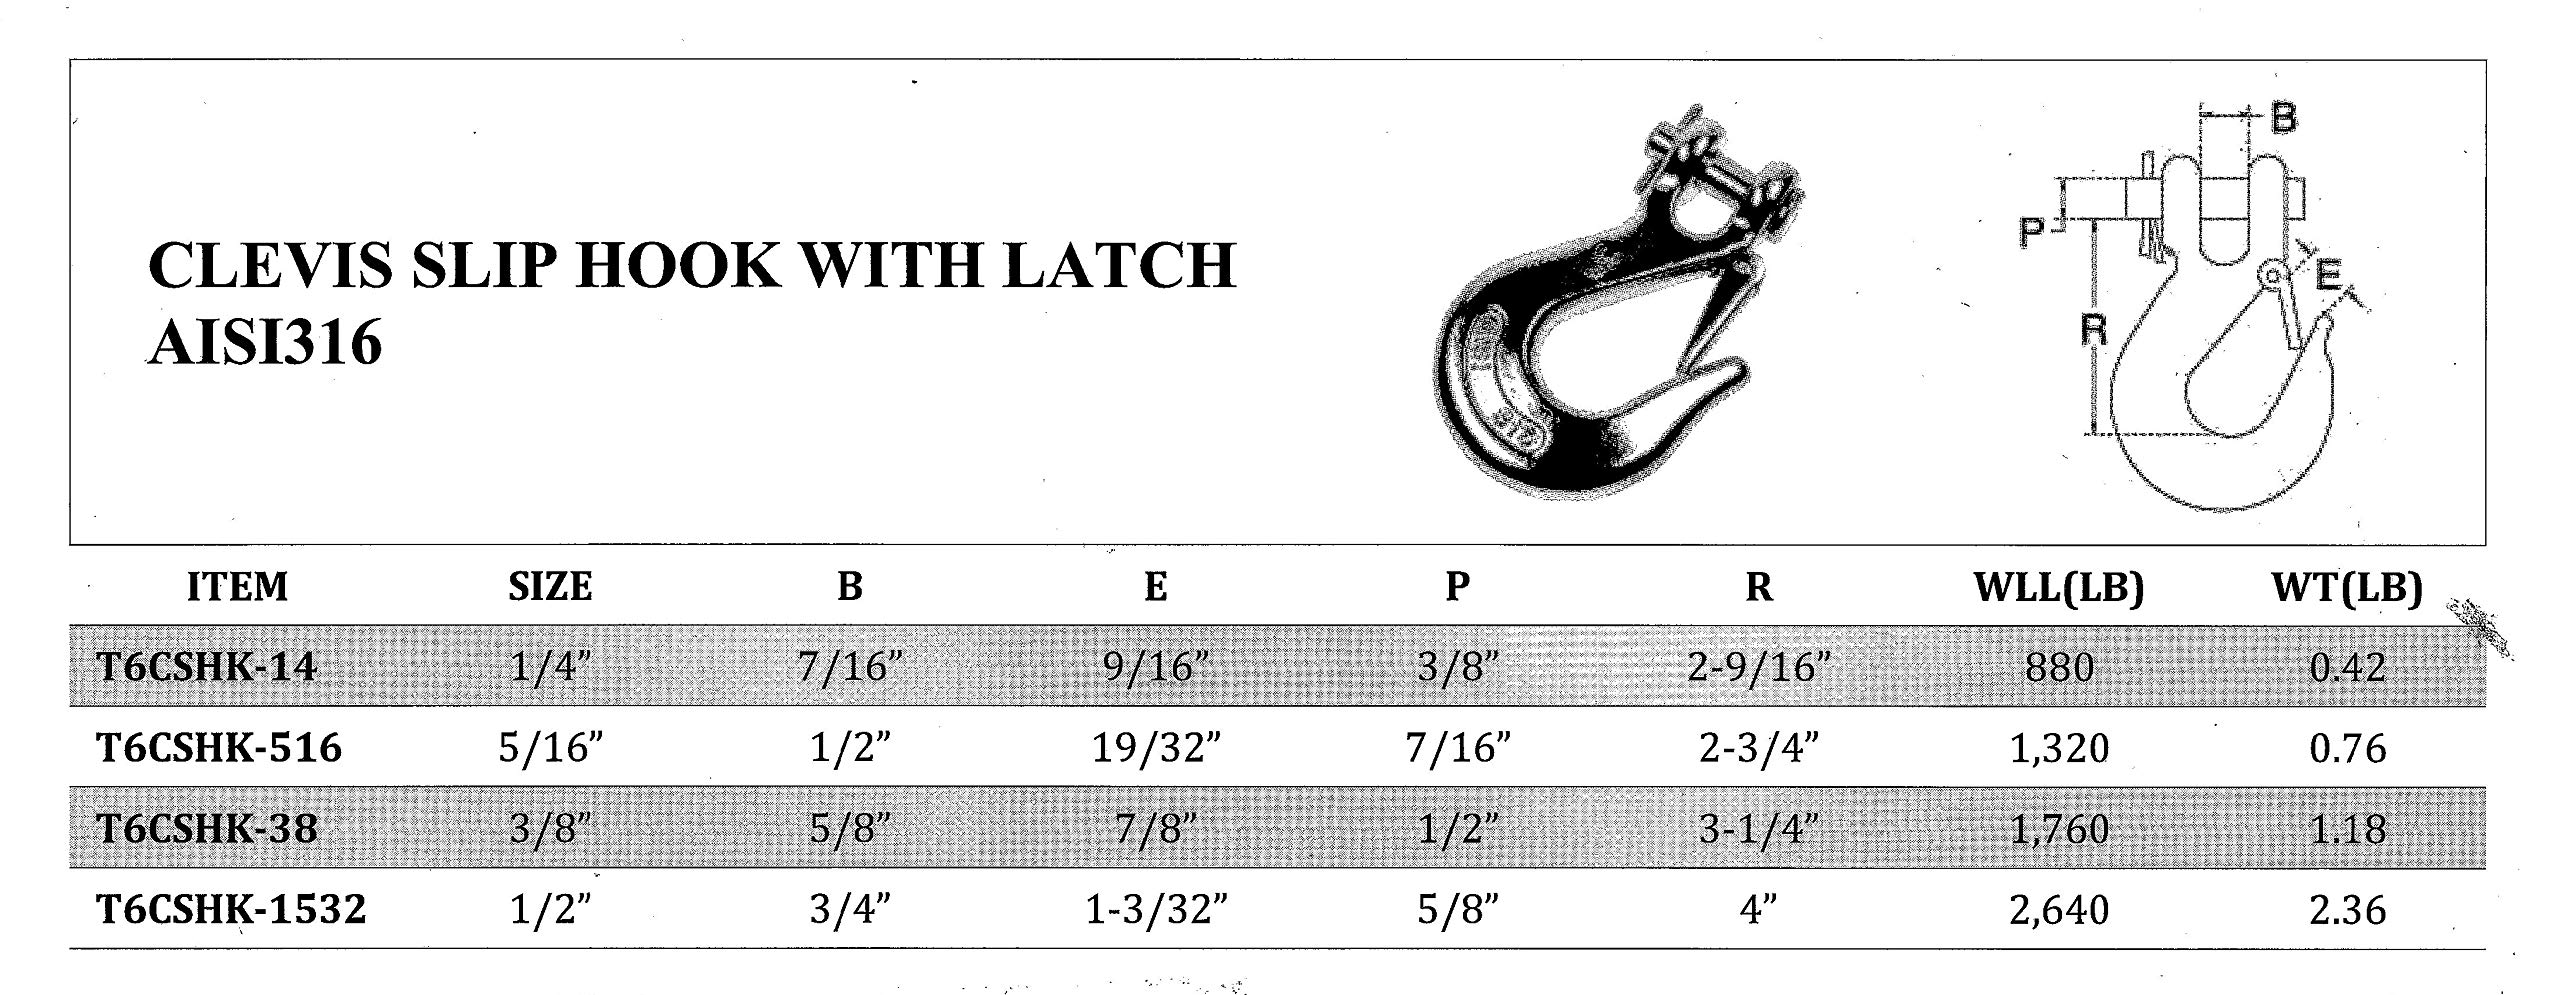 3/8'' Type 316 Marine Grade Stainless Steel Clevis Slip Hook with Safety Latch, Working Load Limit 1760 lb: 1, 2 and 5 pcs (5)